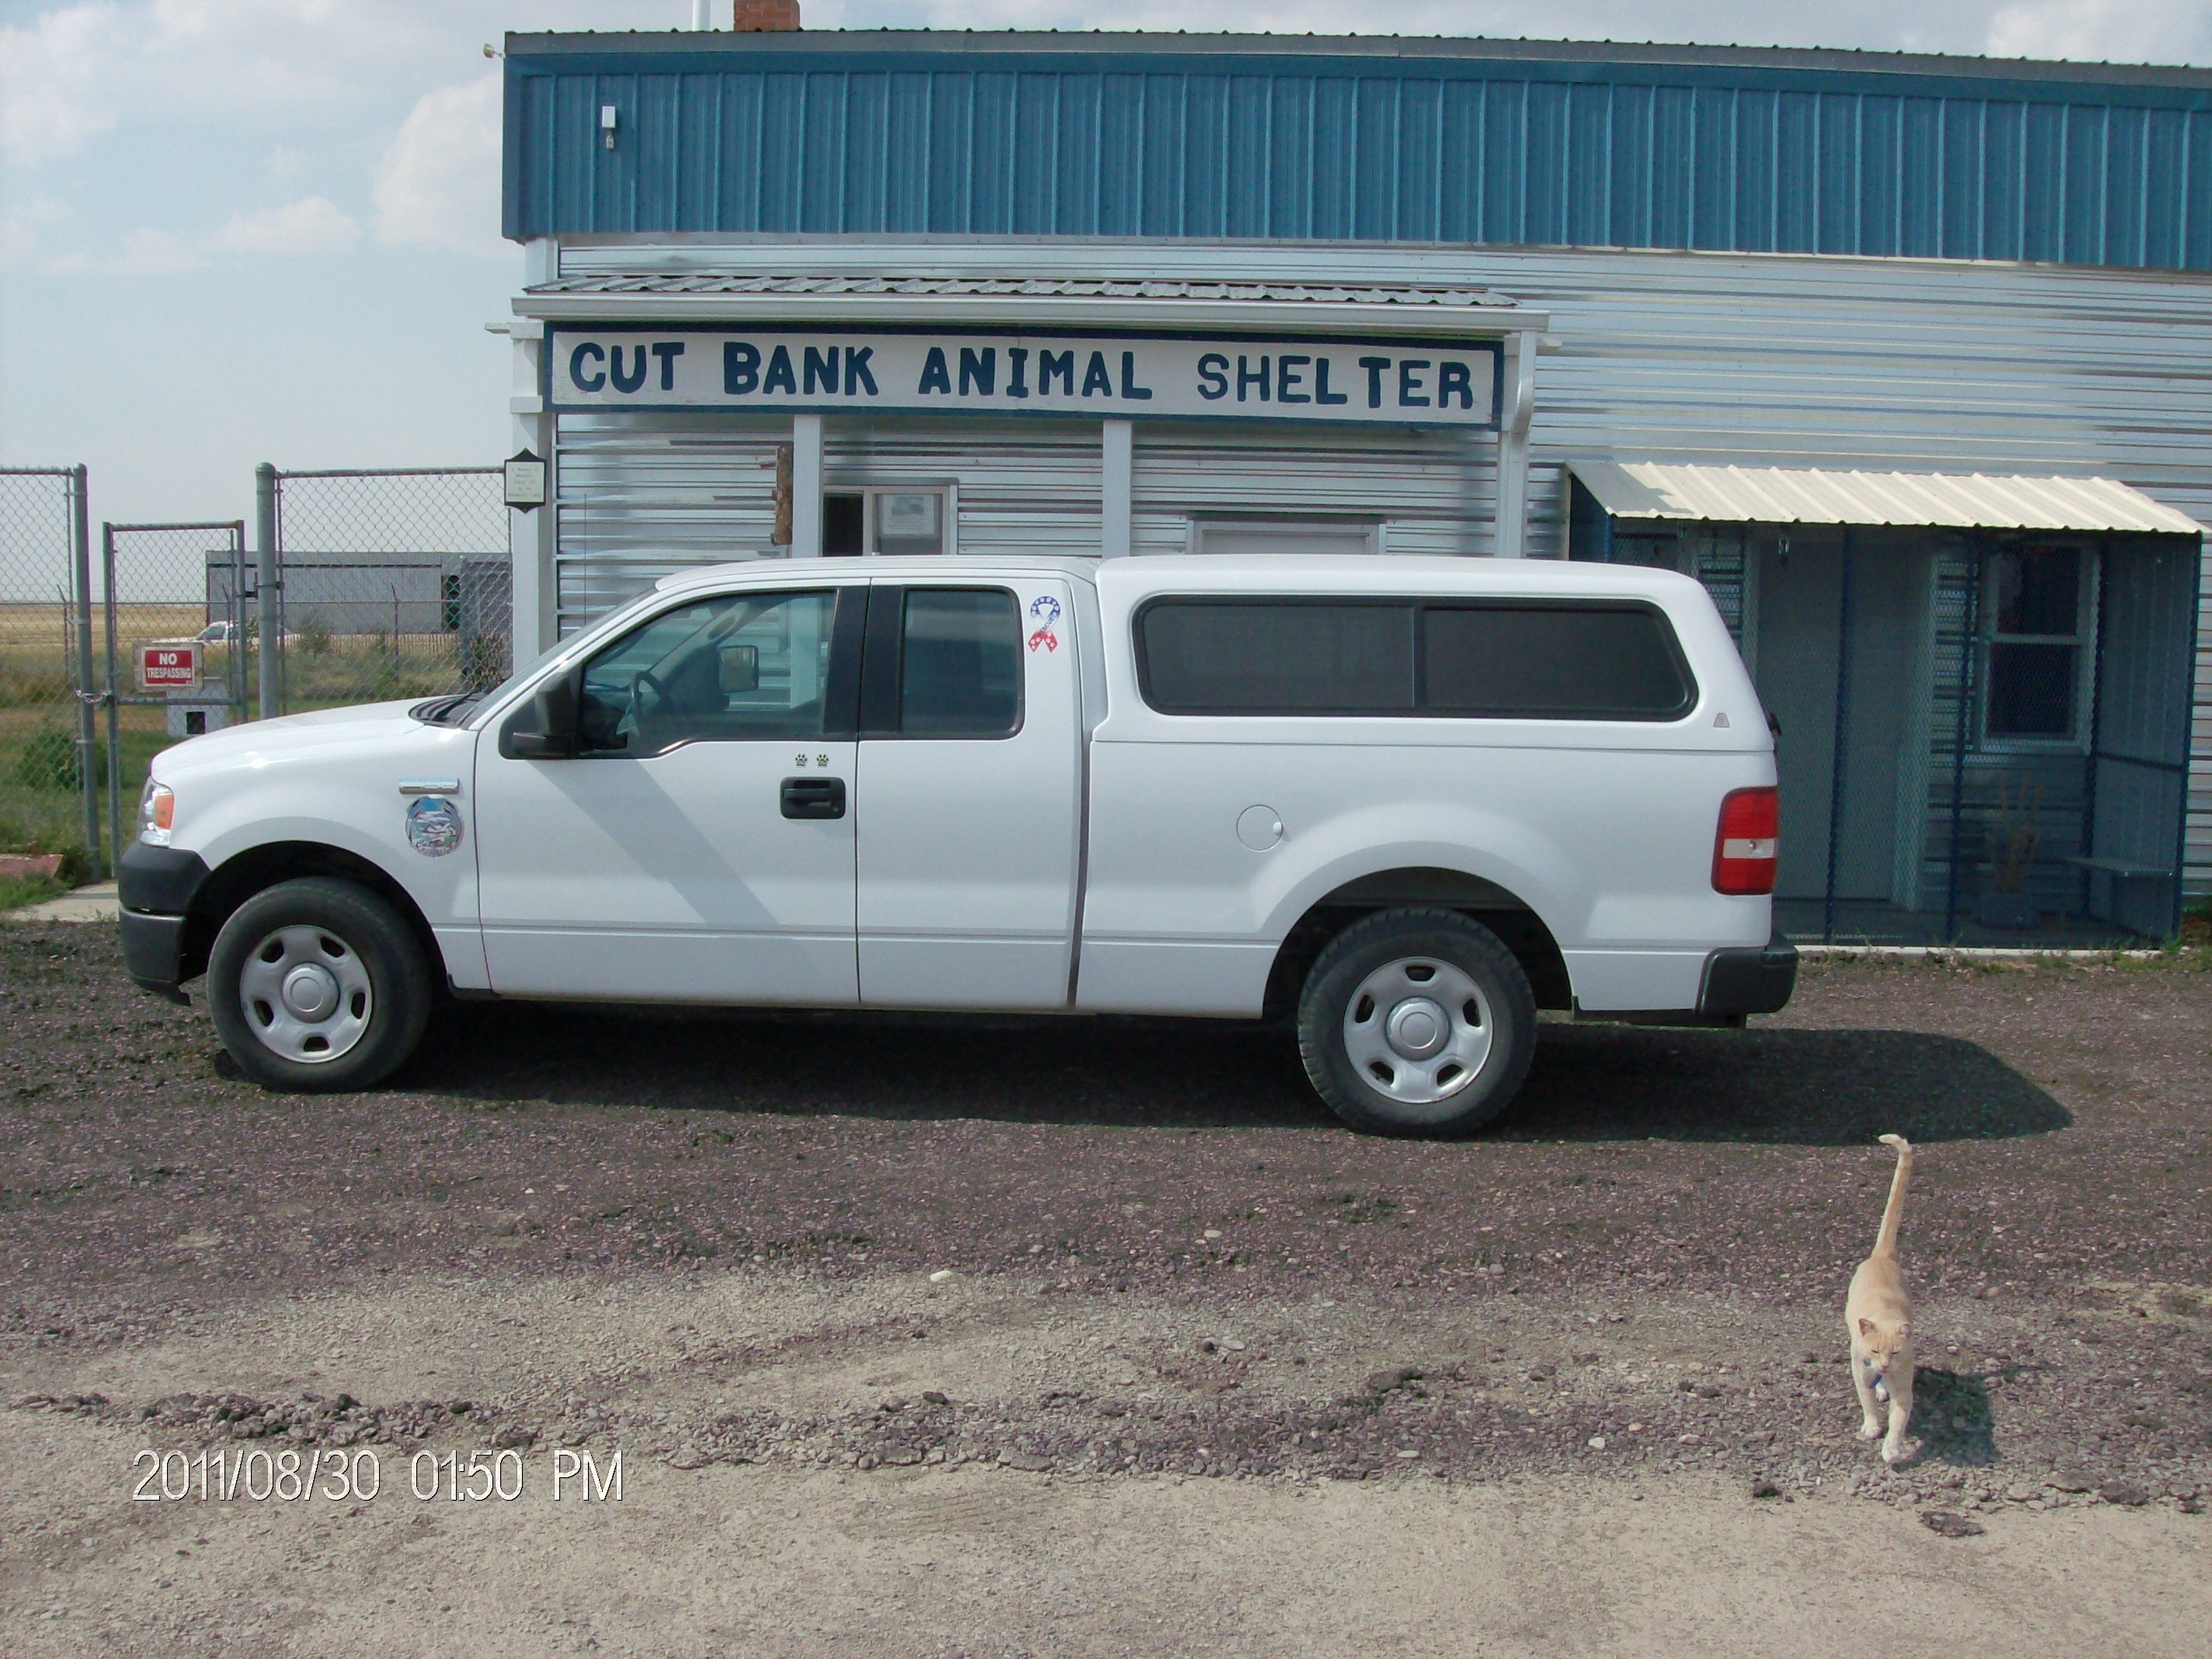 Welcome to Cut Bank Animal Shelter